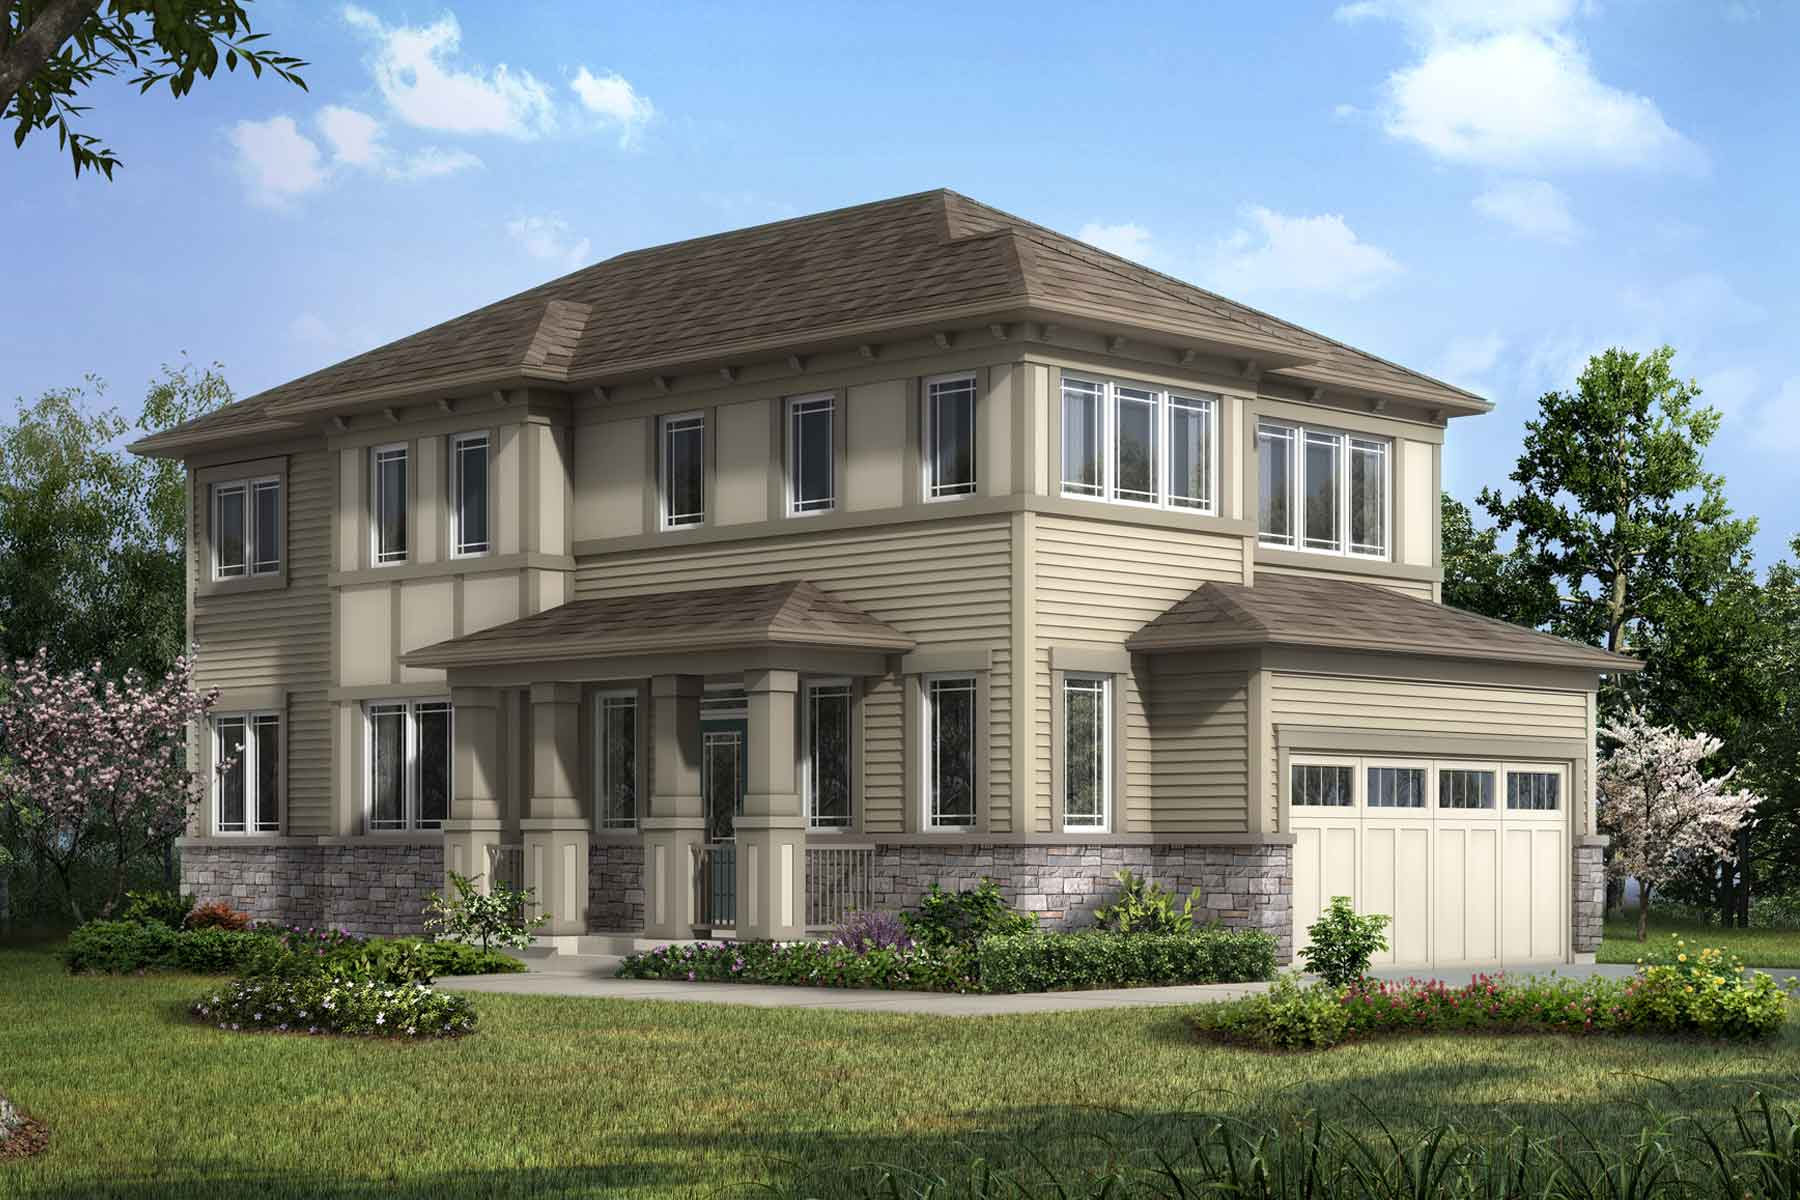 Berkley Corner Plan elevationprairie_carrington_berkleycorner at Carrington in Calgary Alberta by Mattamy Homes